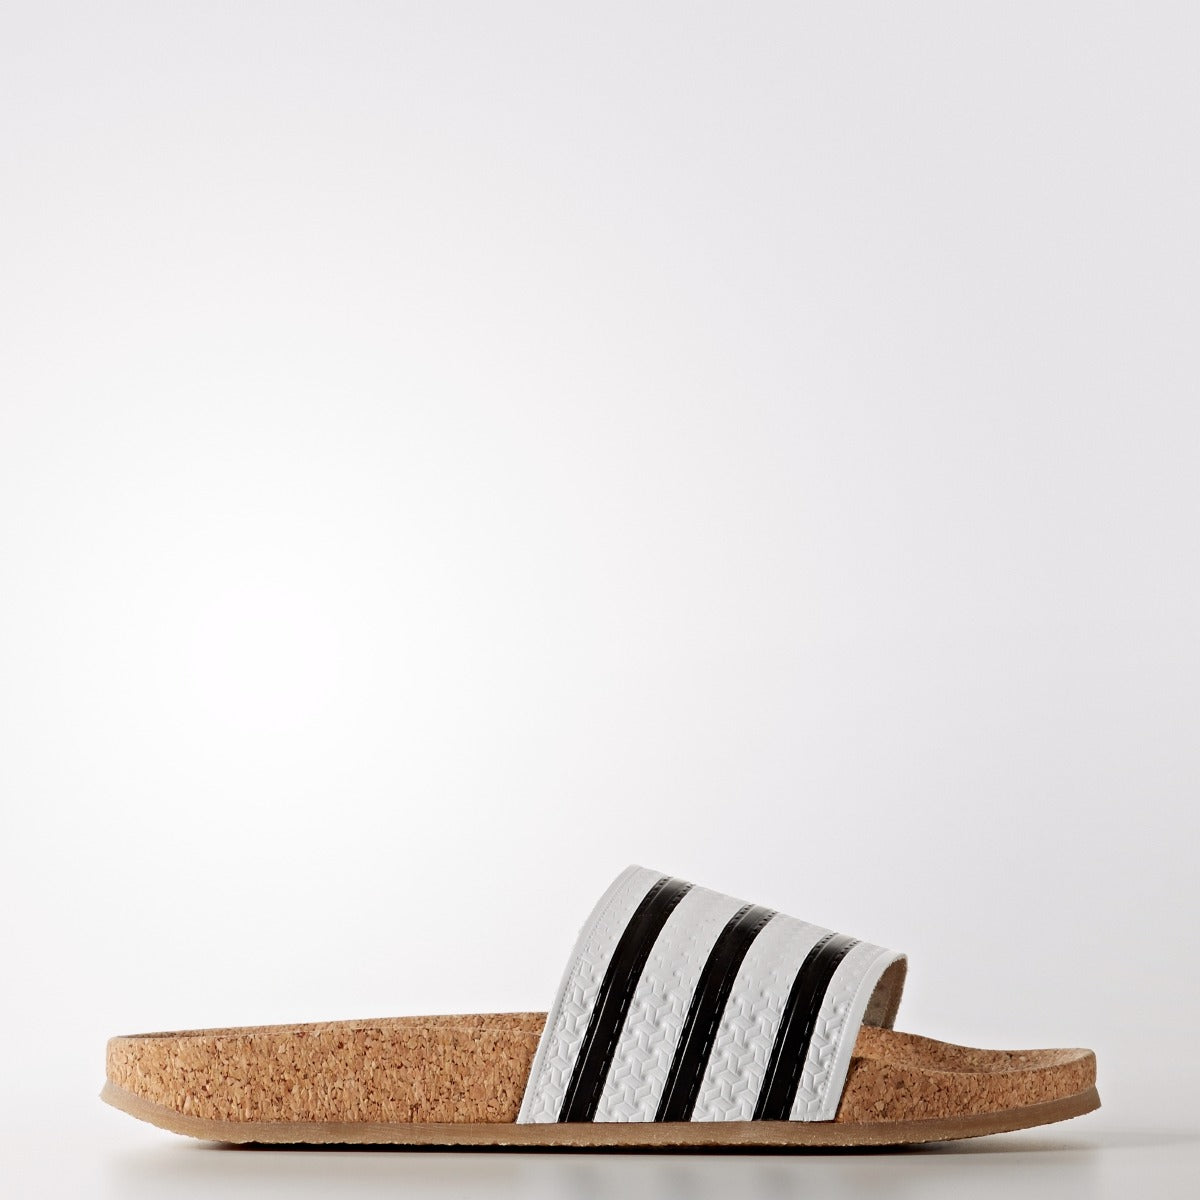 44a8acb03c8 Women s adidas Originals adilette Cork Slides BA7210